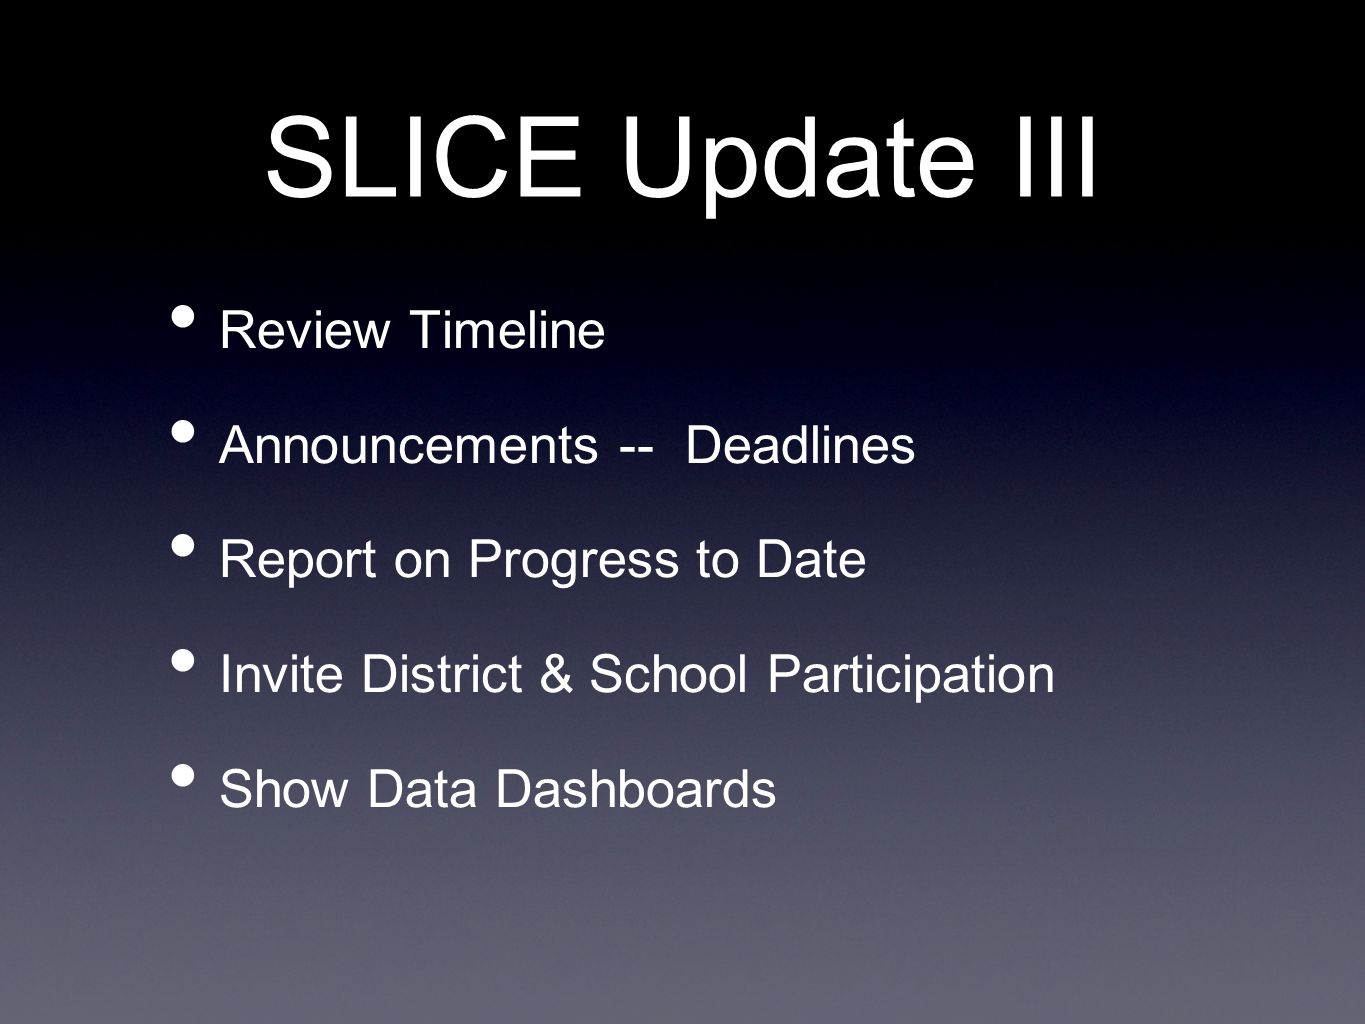 SLICE Update III Review Timeline Announcements -- Deadlines Report on Progress to Date Invite District & School Participation Show Data Dashboards